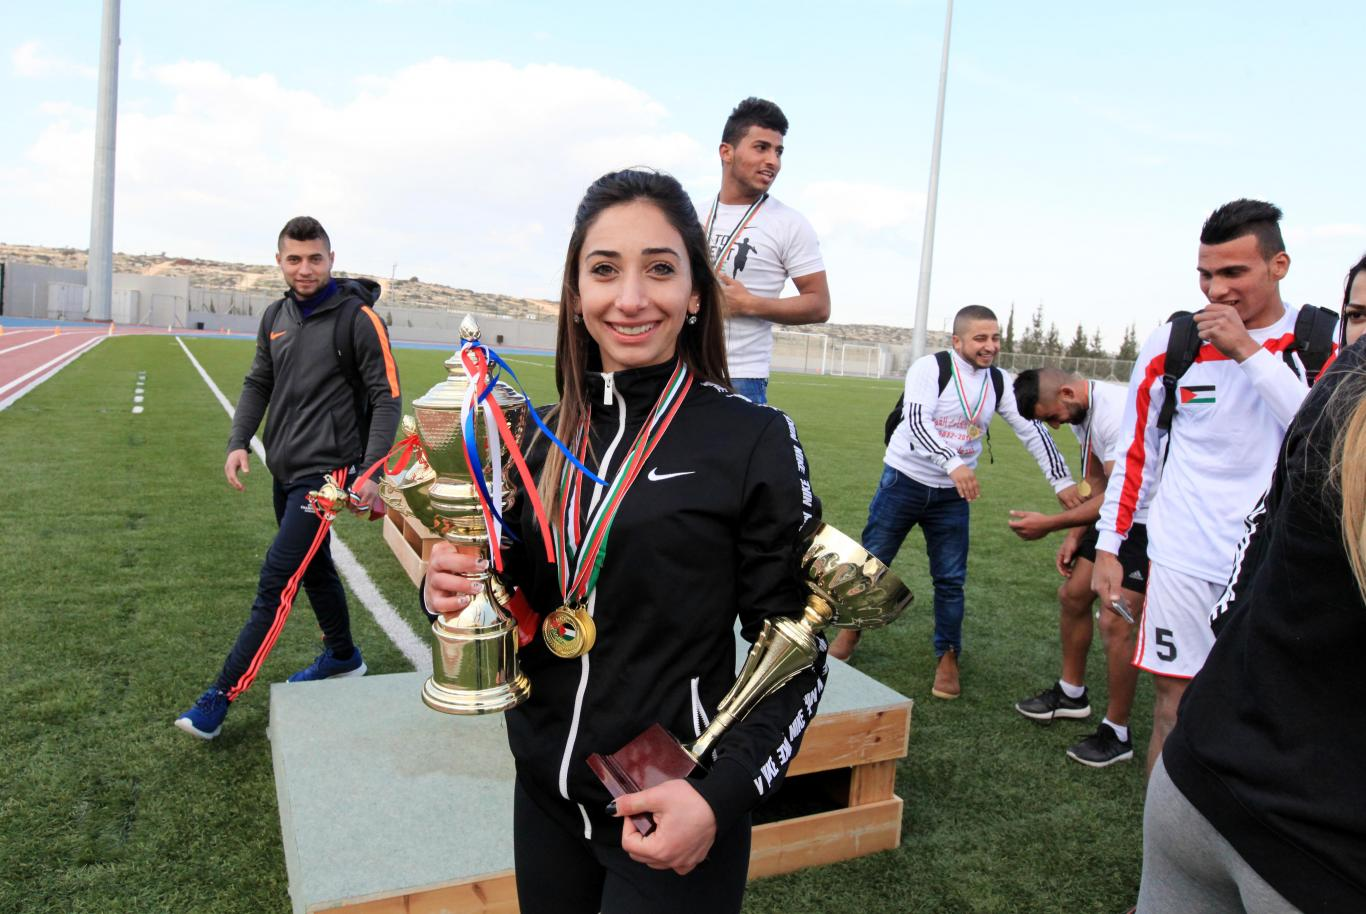 Athletics Championship for the students of Sports Sciences Department